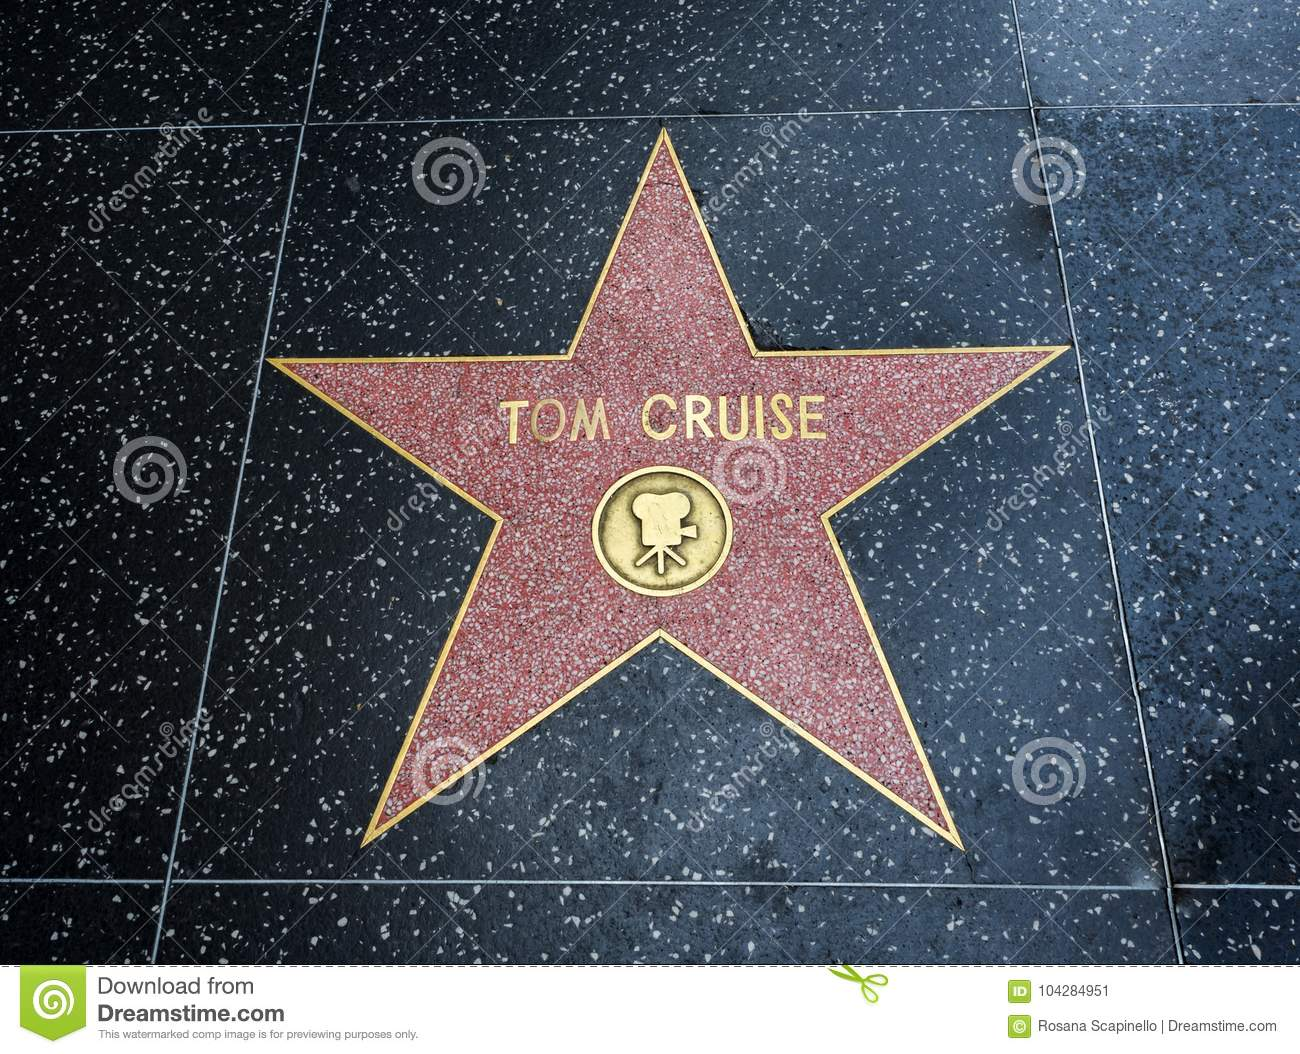 Tom Cruise-` s Stern, Hollywood-Weg des Ruhmes - 11. August 2017 - Hollywood Boulevard, Los Angeles, Kalifornien, CA